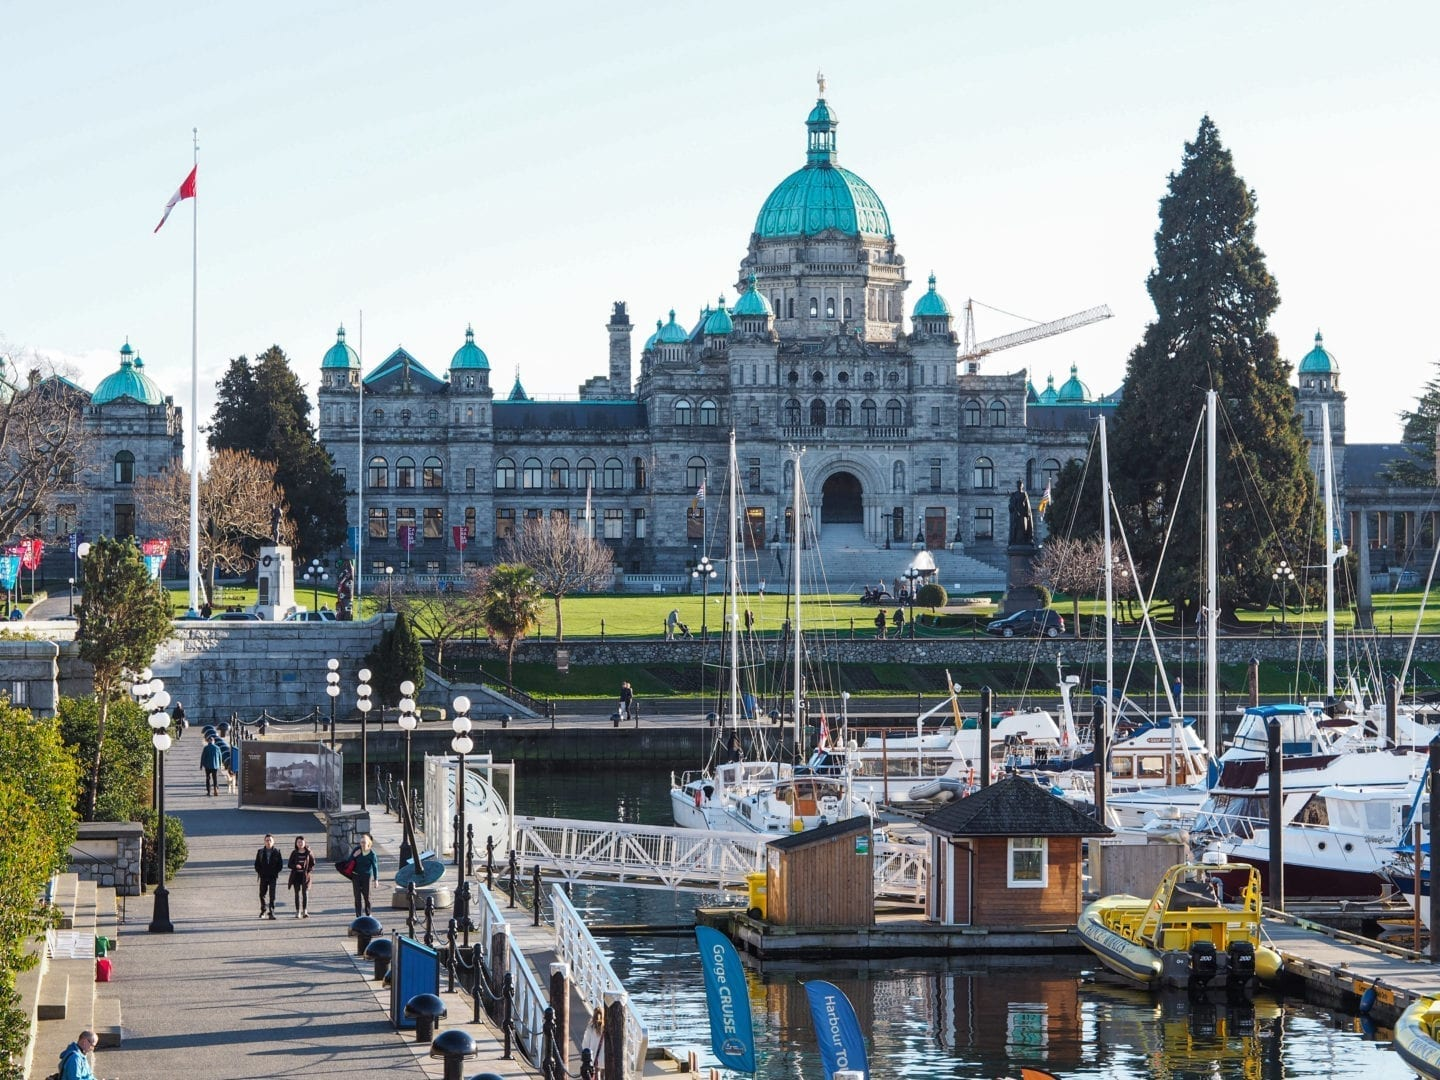 british columbia canada tips for travellers victoria vancouver and bear viewing tips and advice